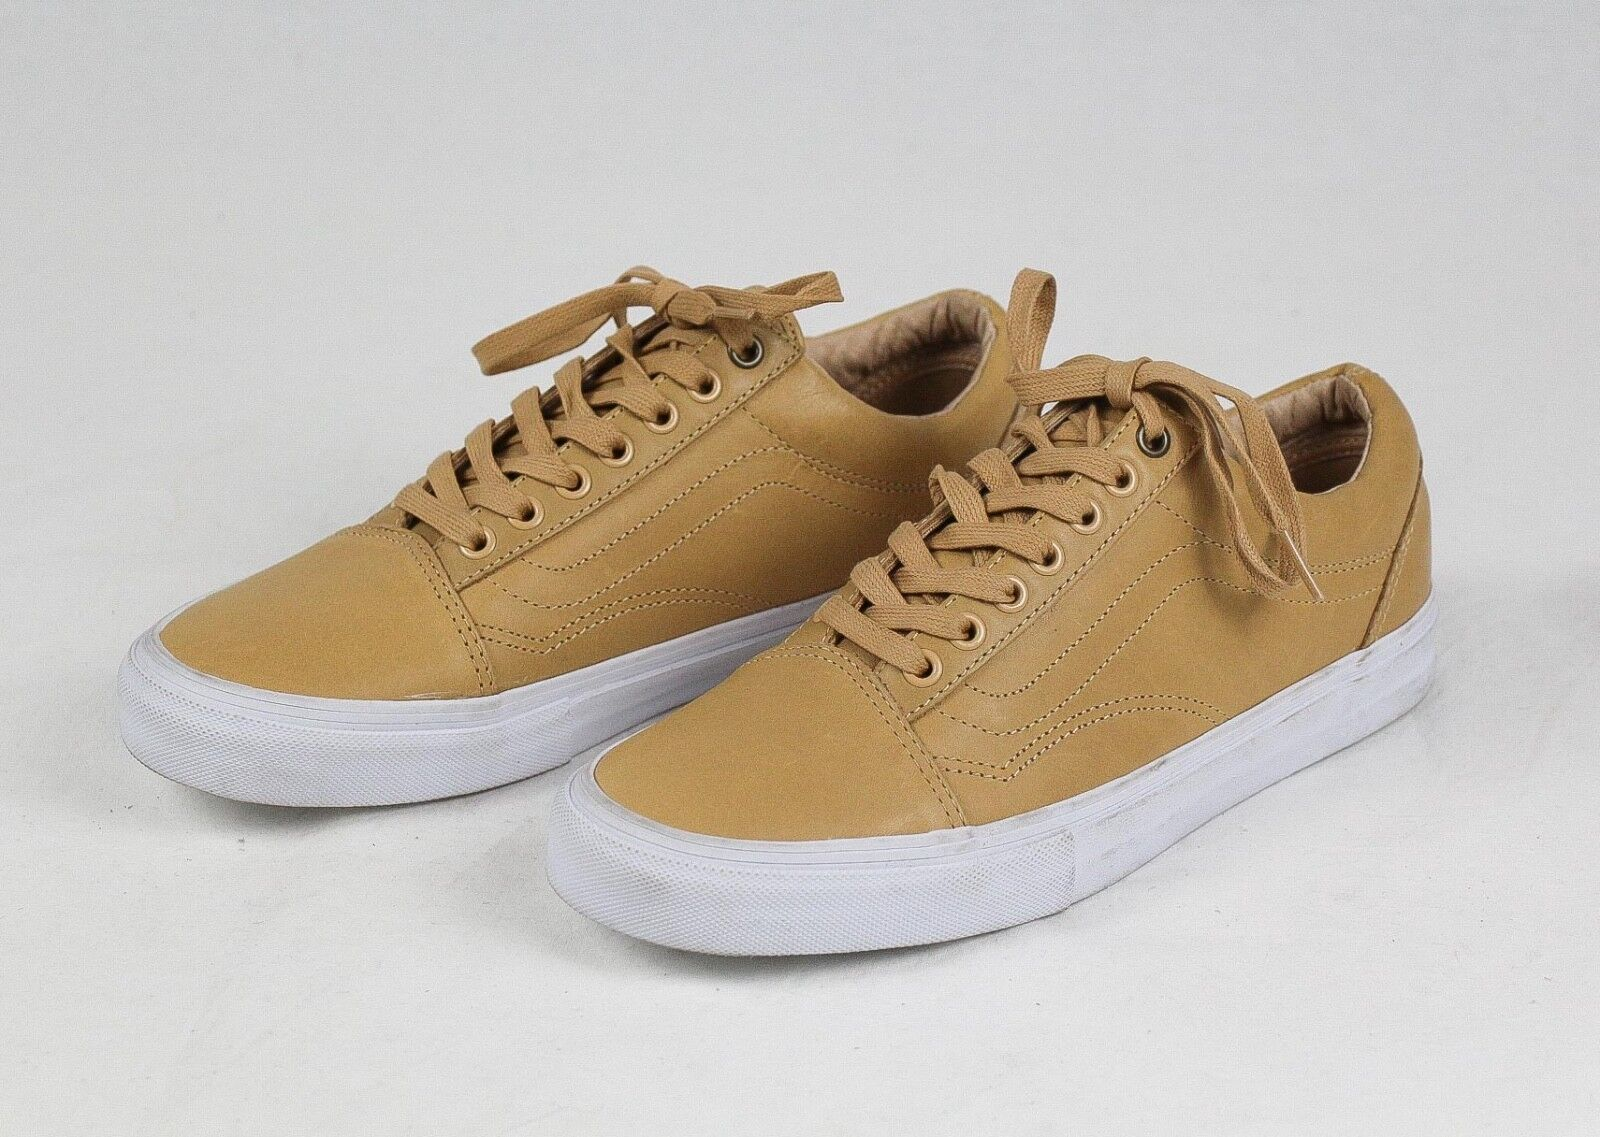 Vans x Highsnobiety F&F Leather Old Skool Sand Sneakers Size 8.5 RARE 1 of 100